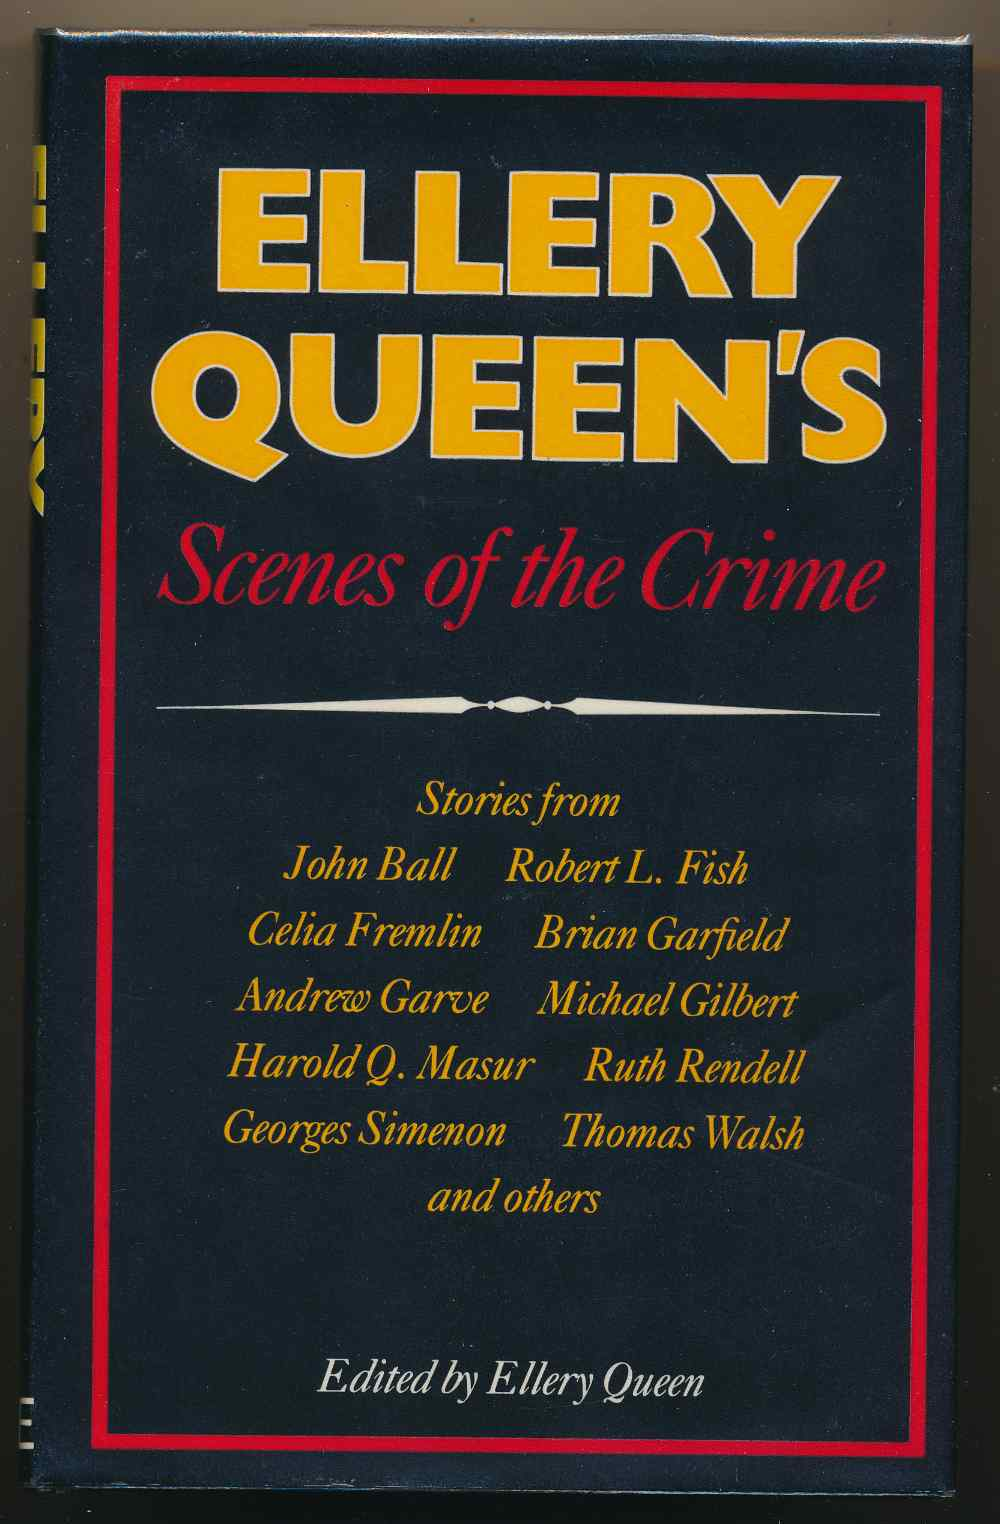 Ellery Queen's scenes of the crime